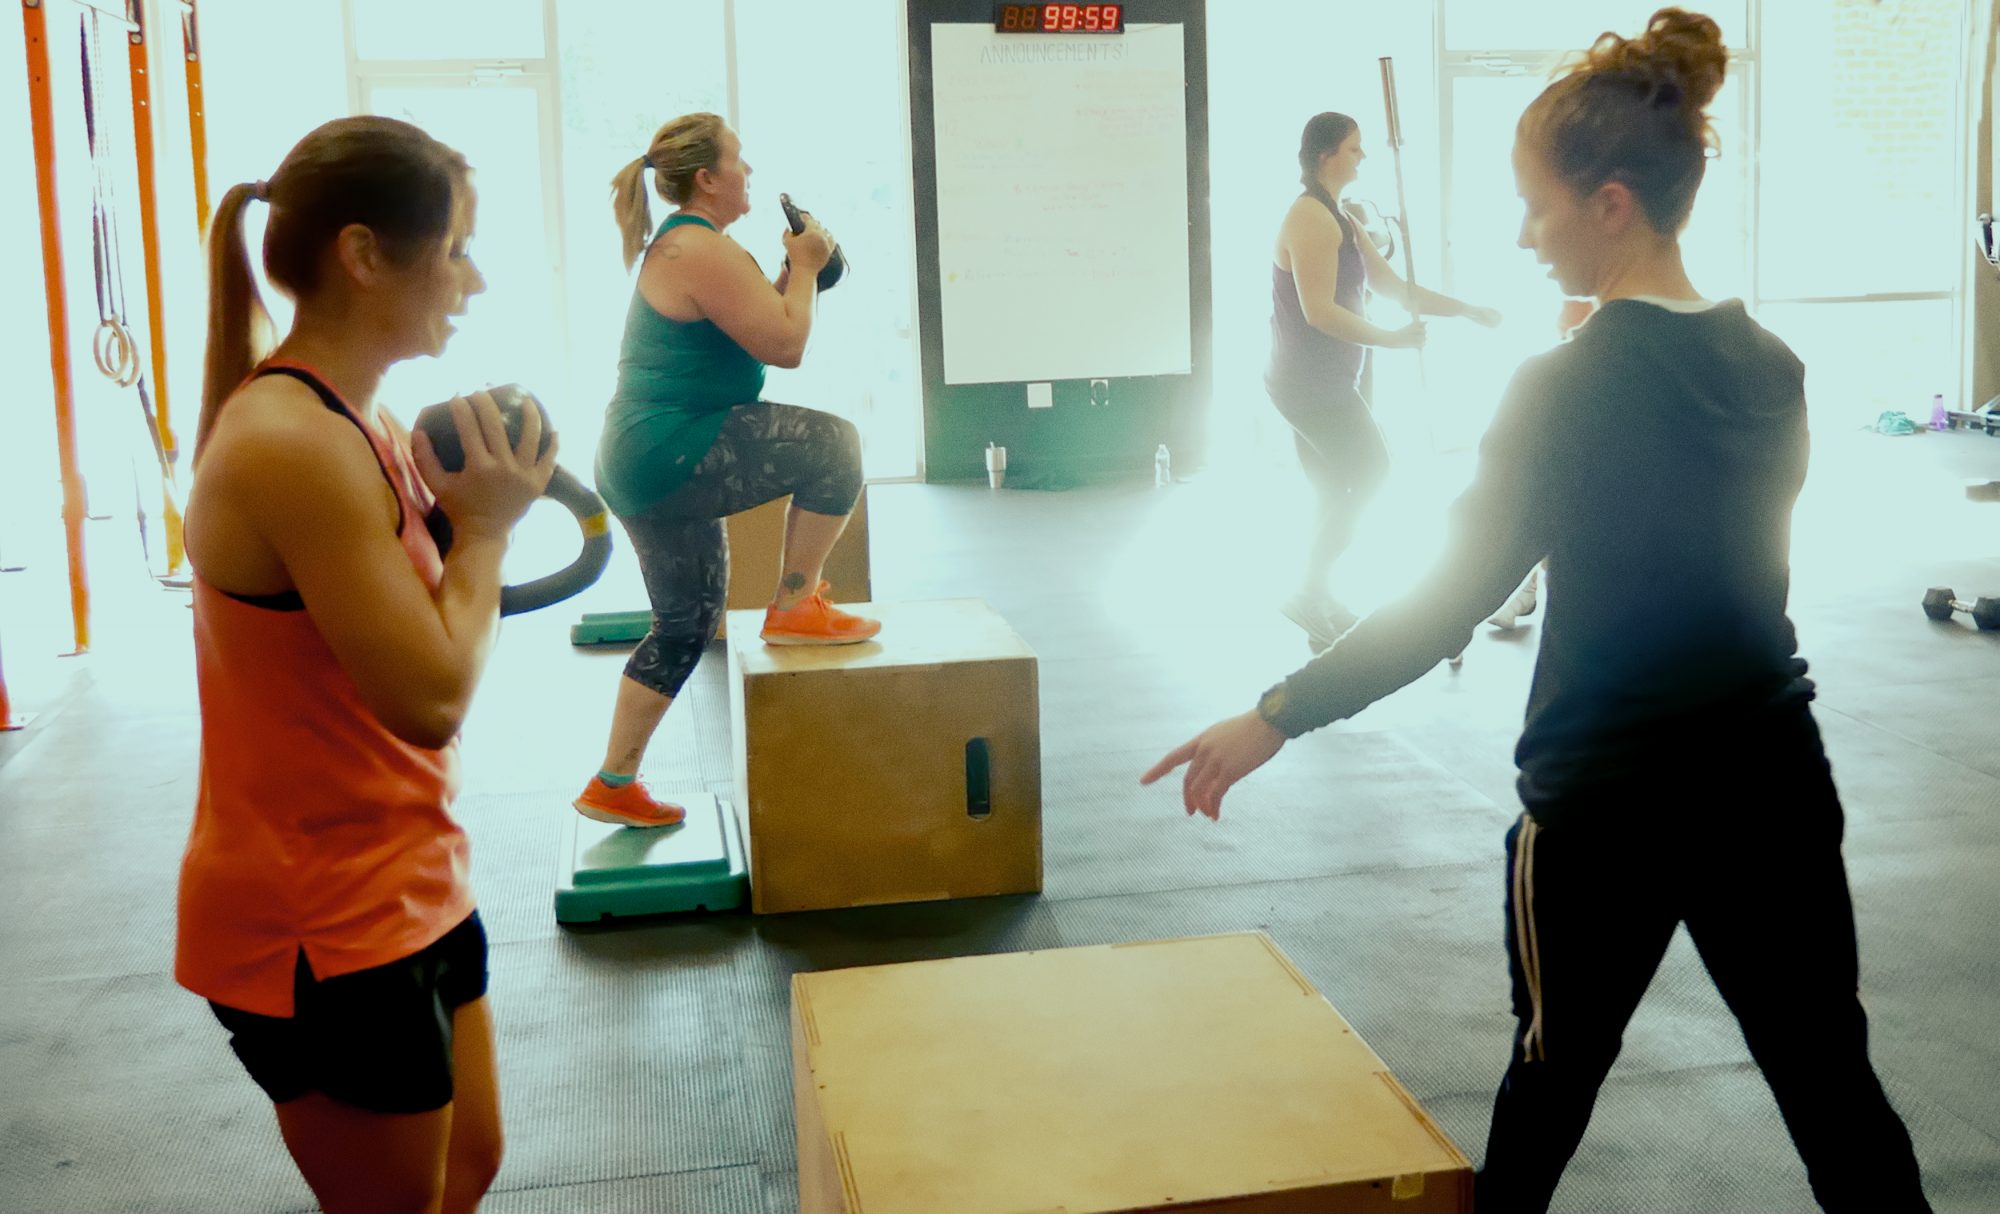 body positive resolutions exercise curvy crossfit group health cross training class